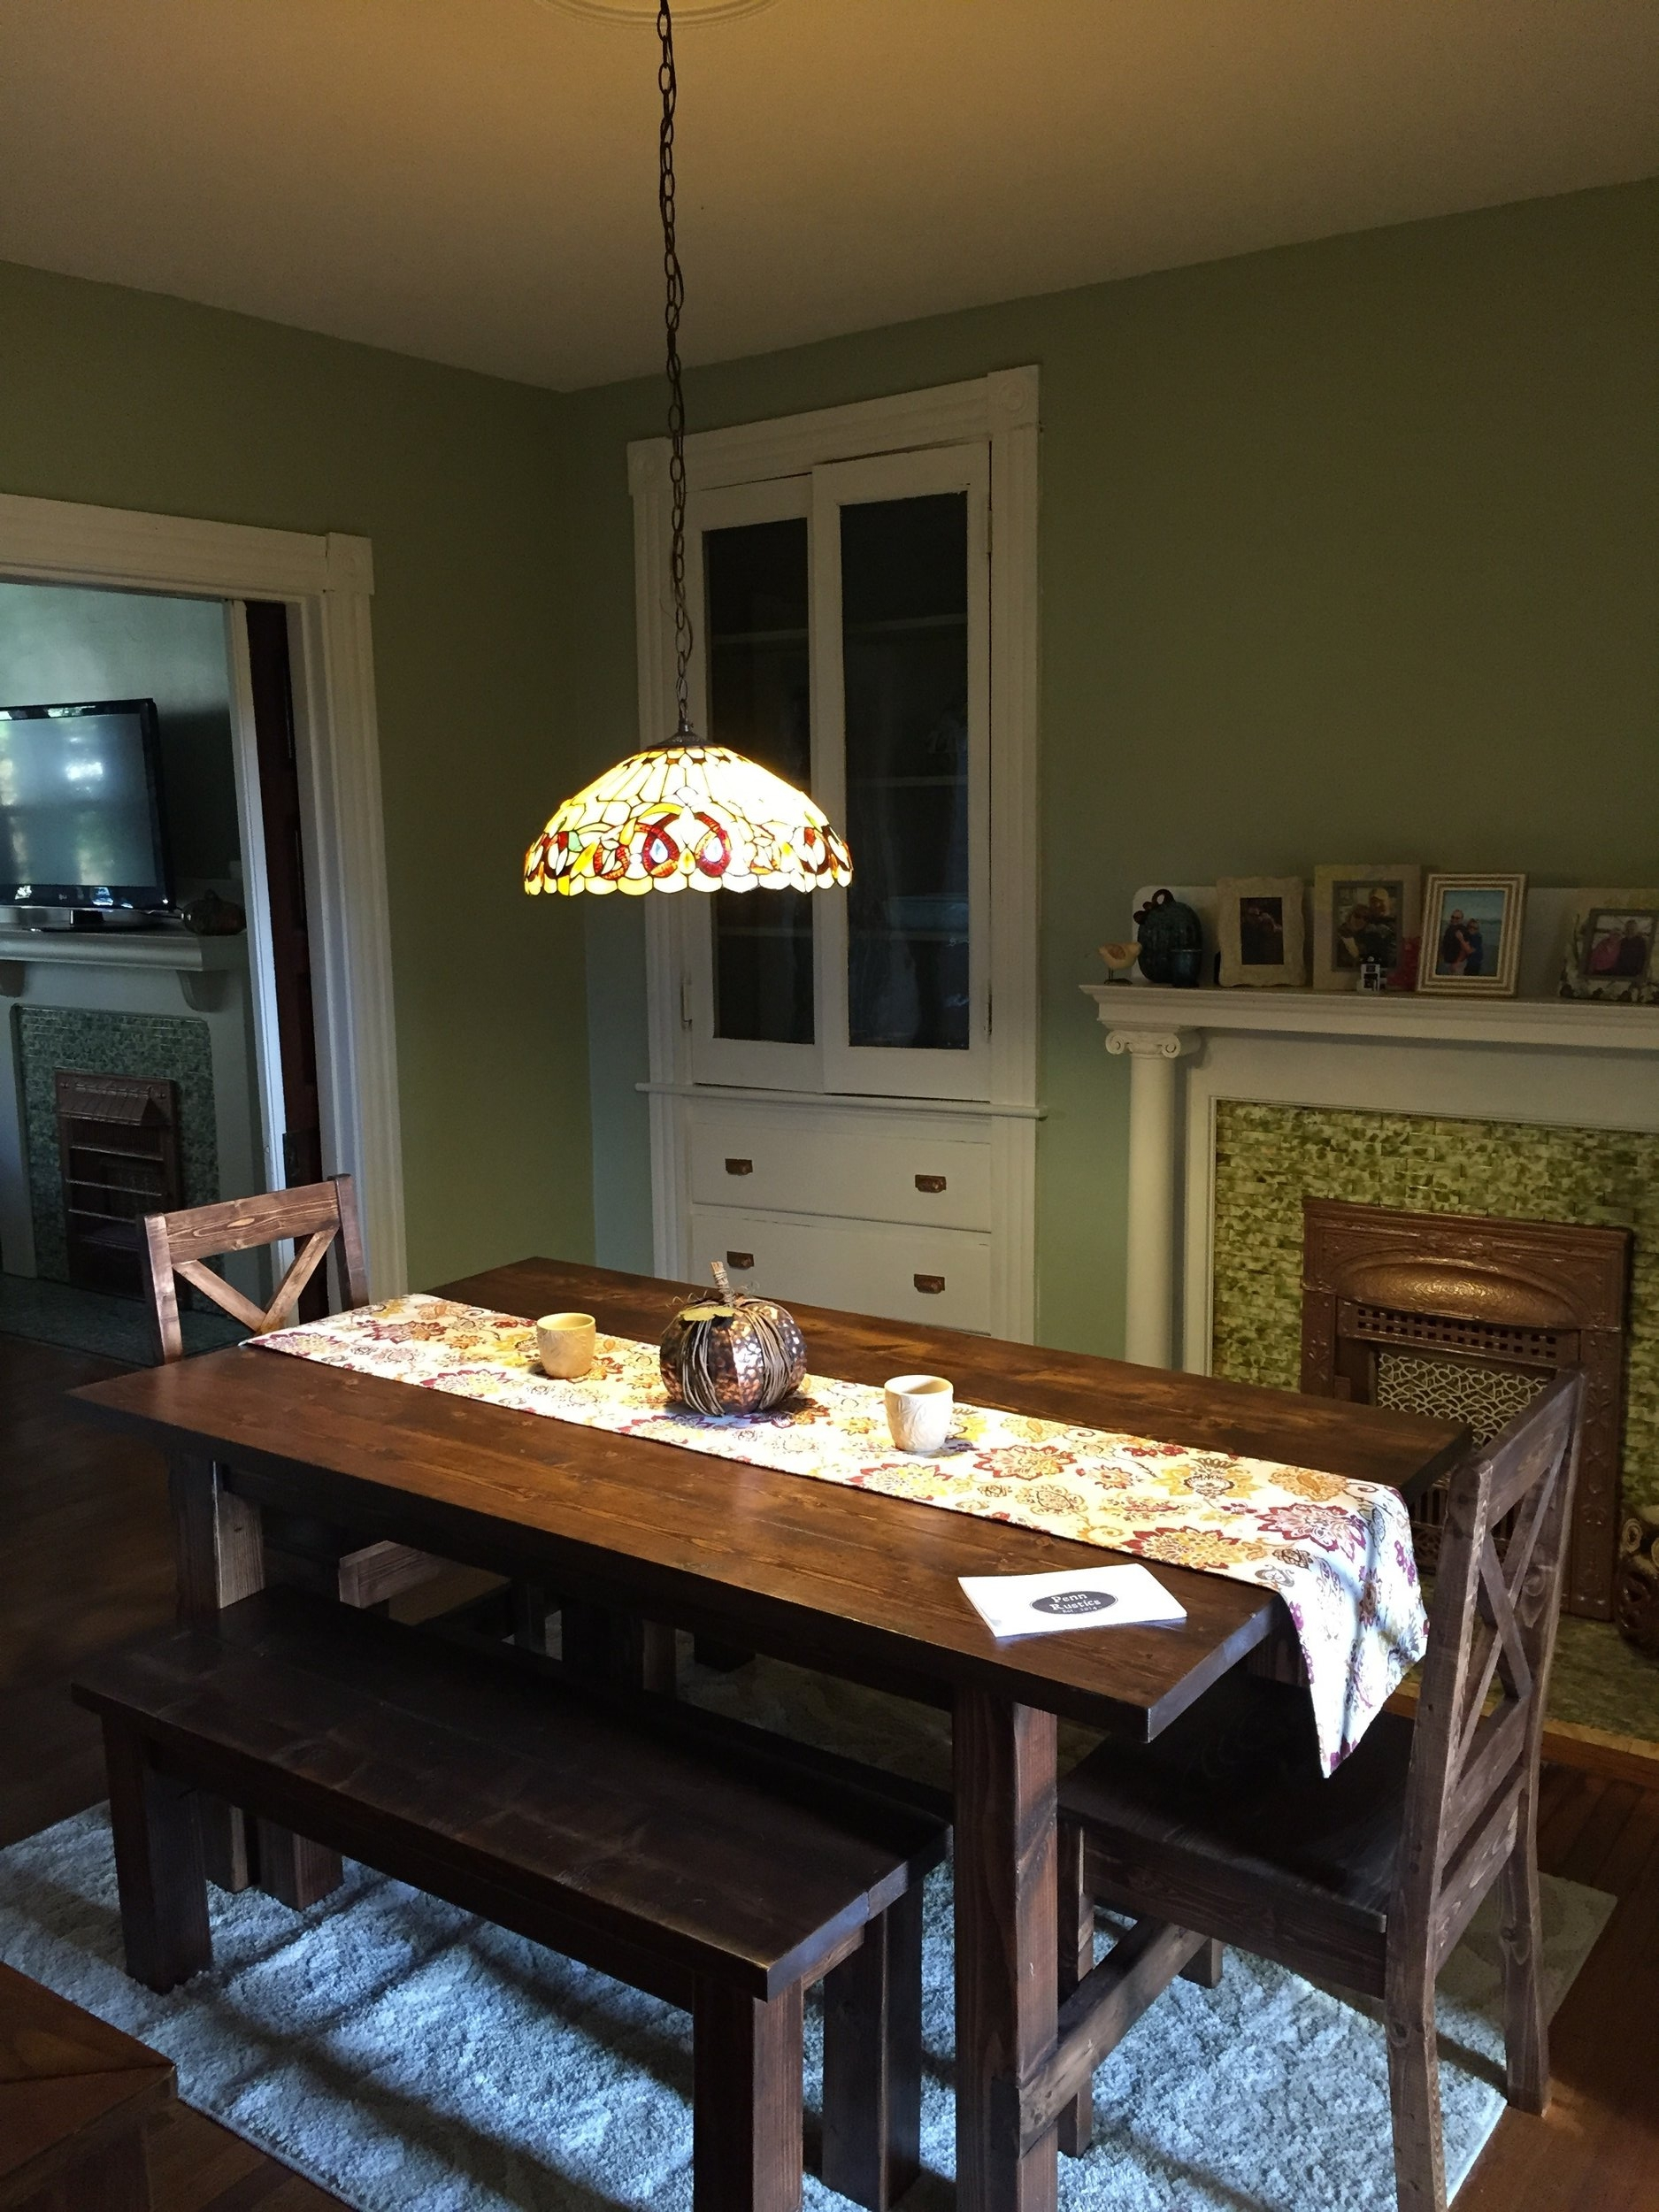 Rustic Farmhouse Table, 2 Bench and 2 Chair Set. Pope.jpg